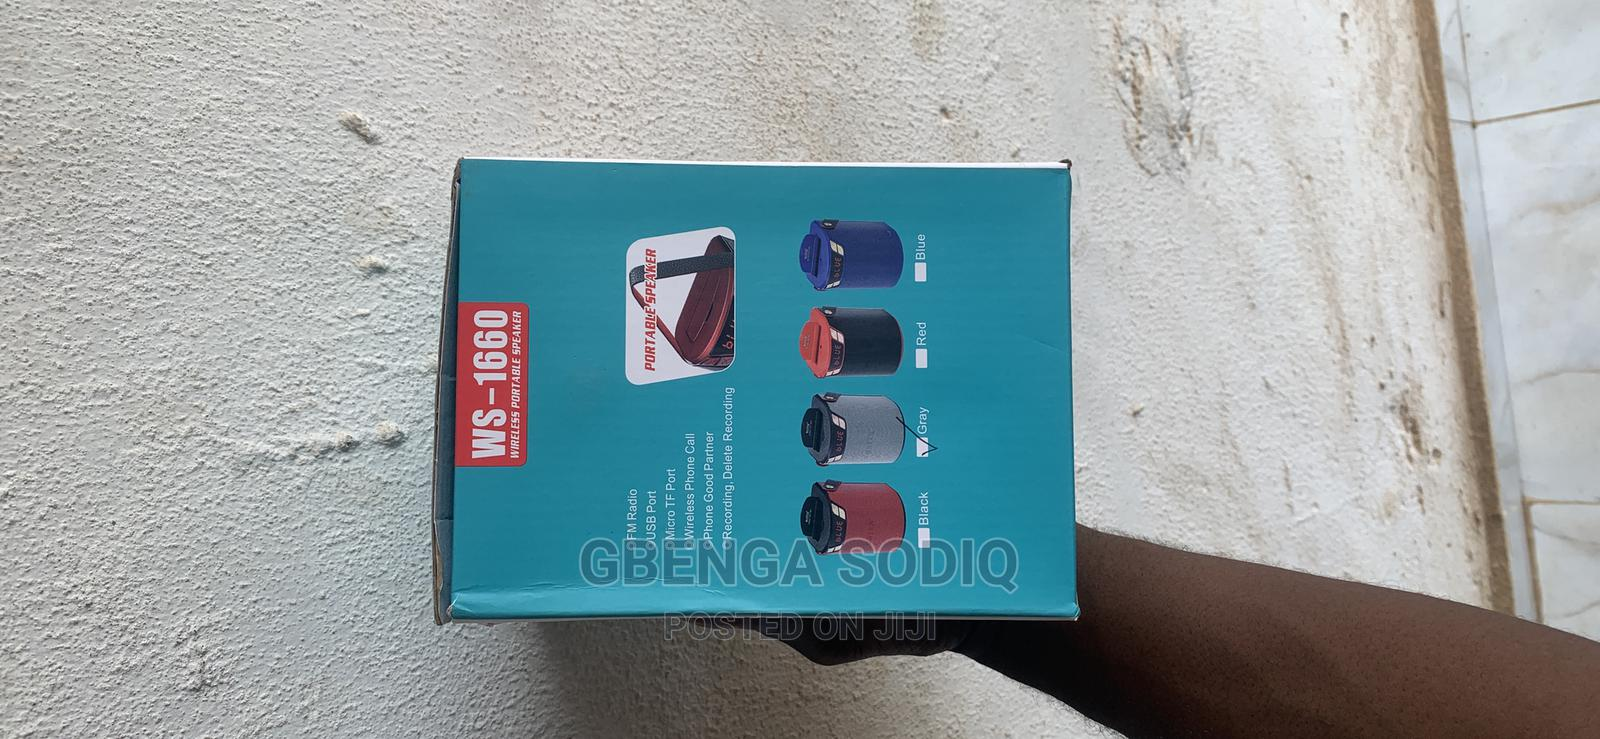 Brand New Original Wster Ws -1660 Bluetooth Speaker   Accessories for Mobile Phones & Tablets for sale in Alimosho, Lagos State, Nigeria